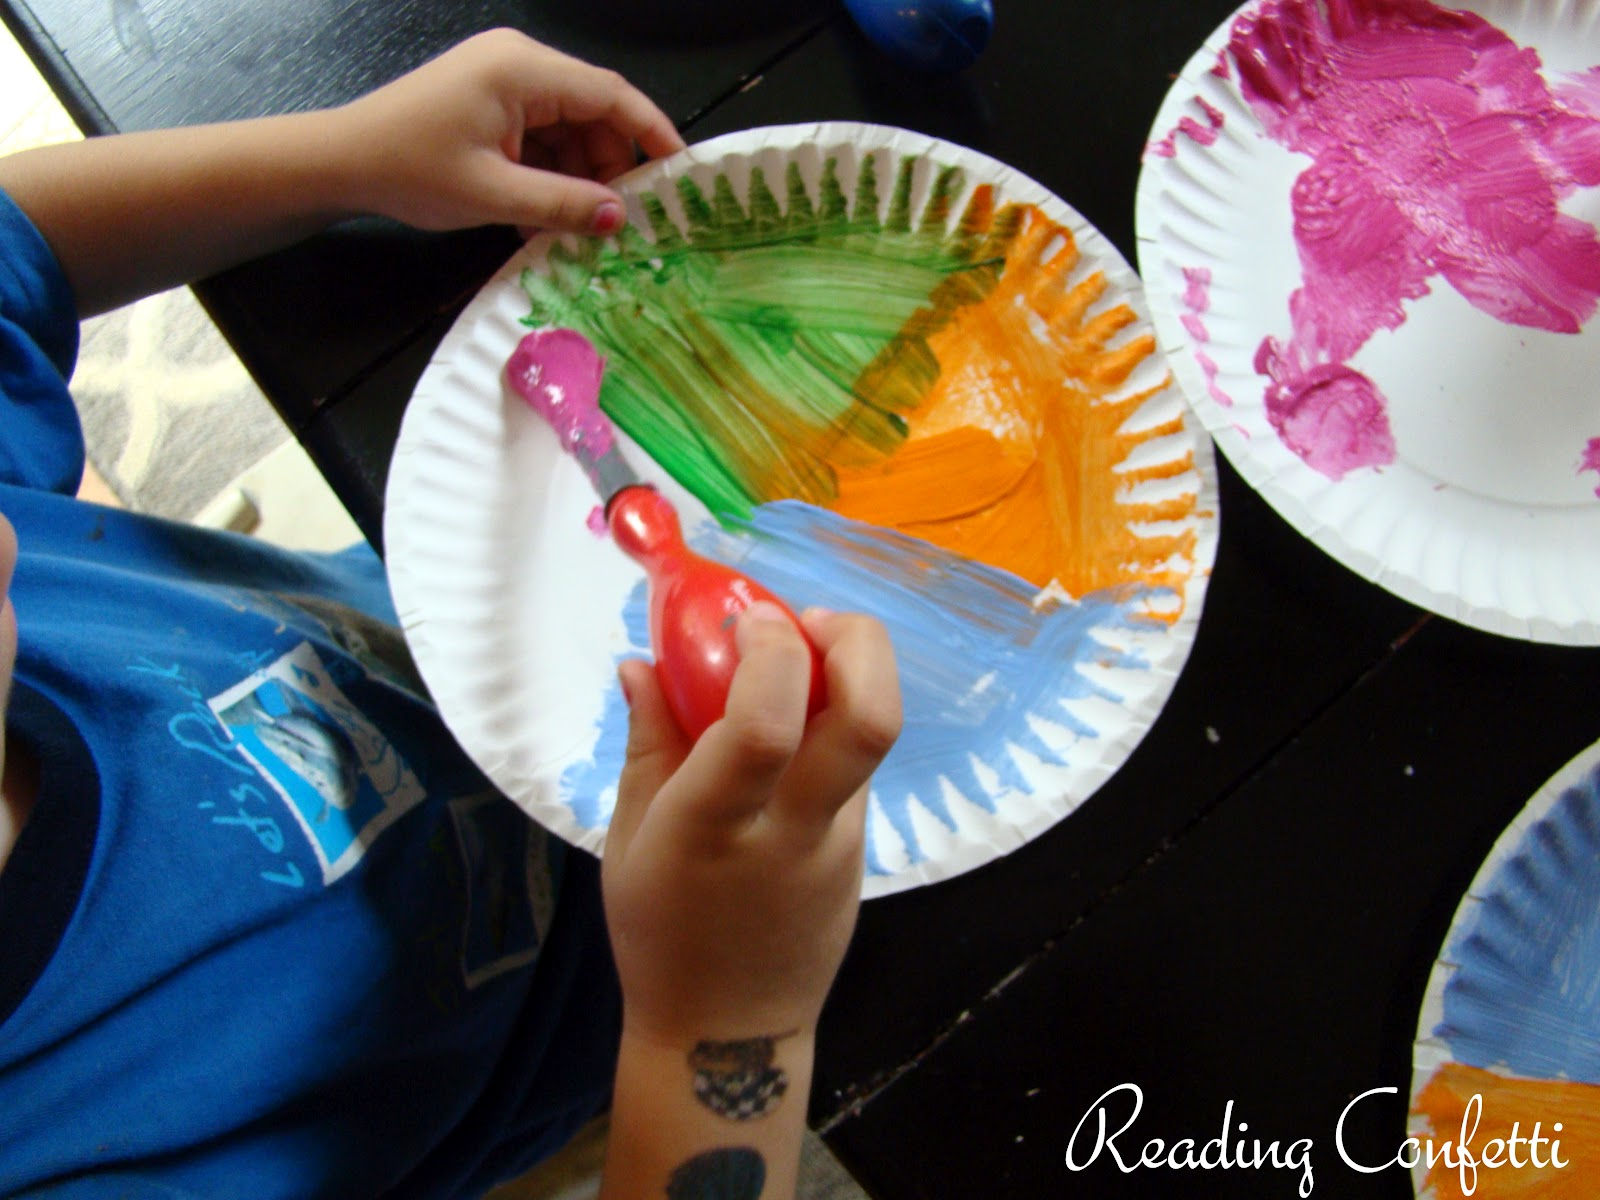 Arts and crafts for a 1 year old - 4 Seasons Craft And Book Activity For Old Bear By Kevin Henkes